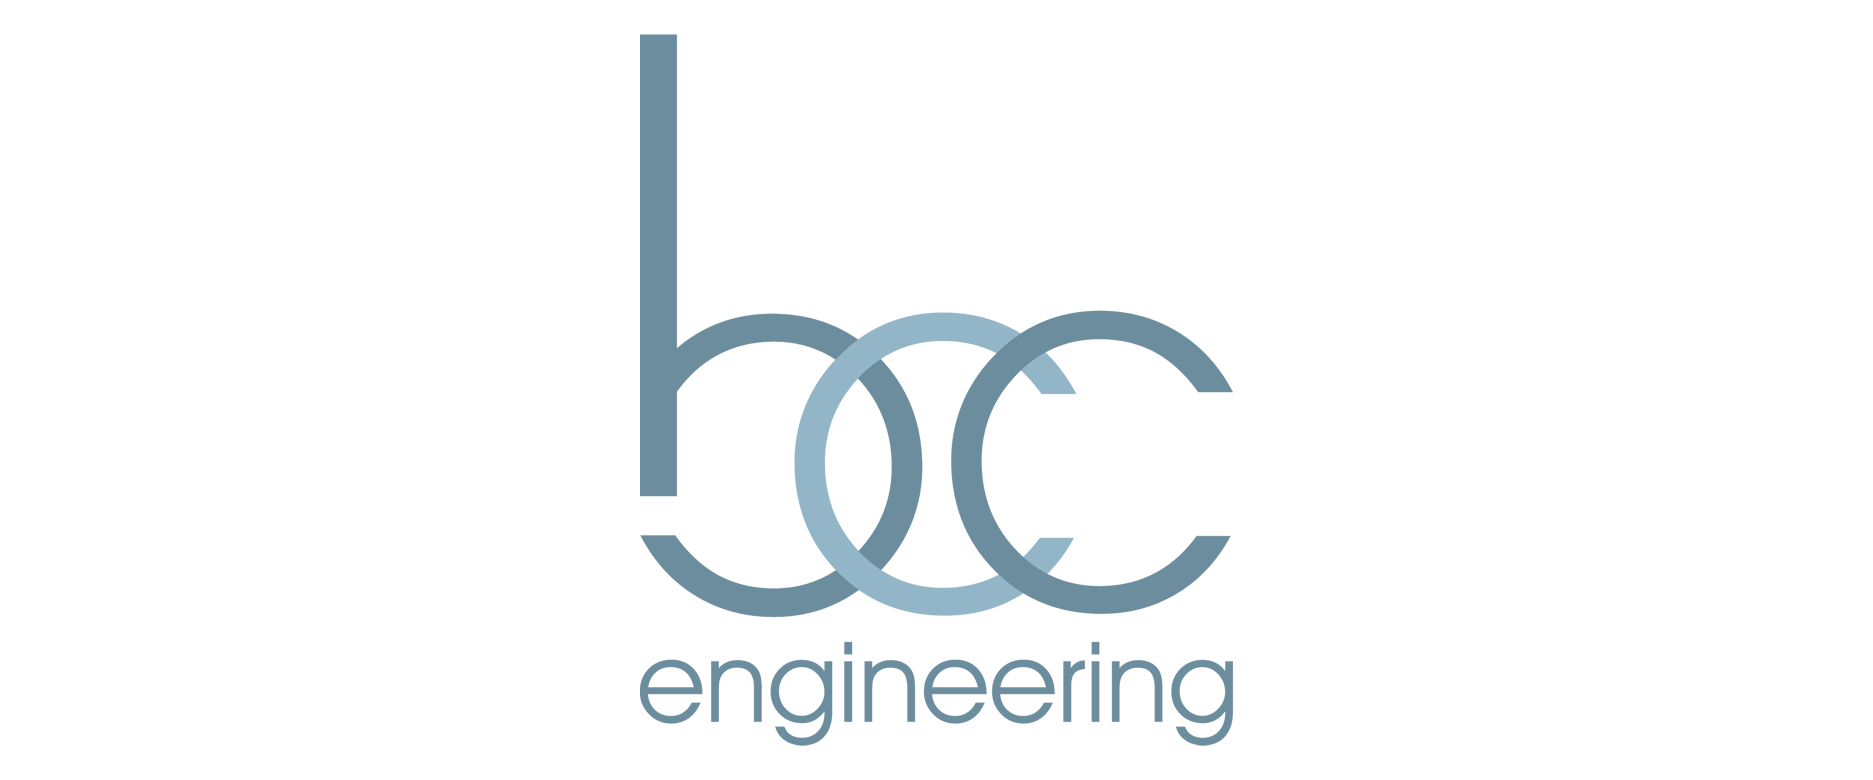 Congrats to BCC Engineering